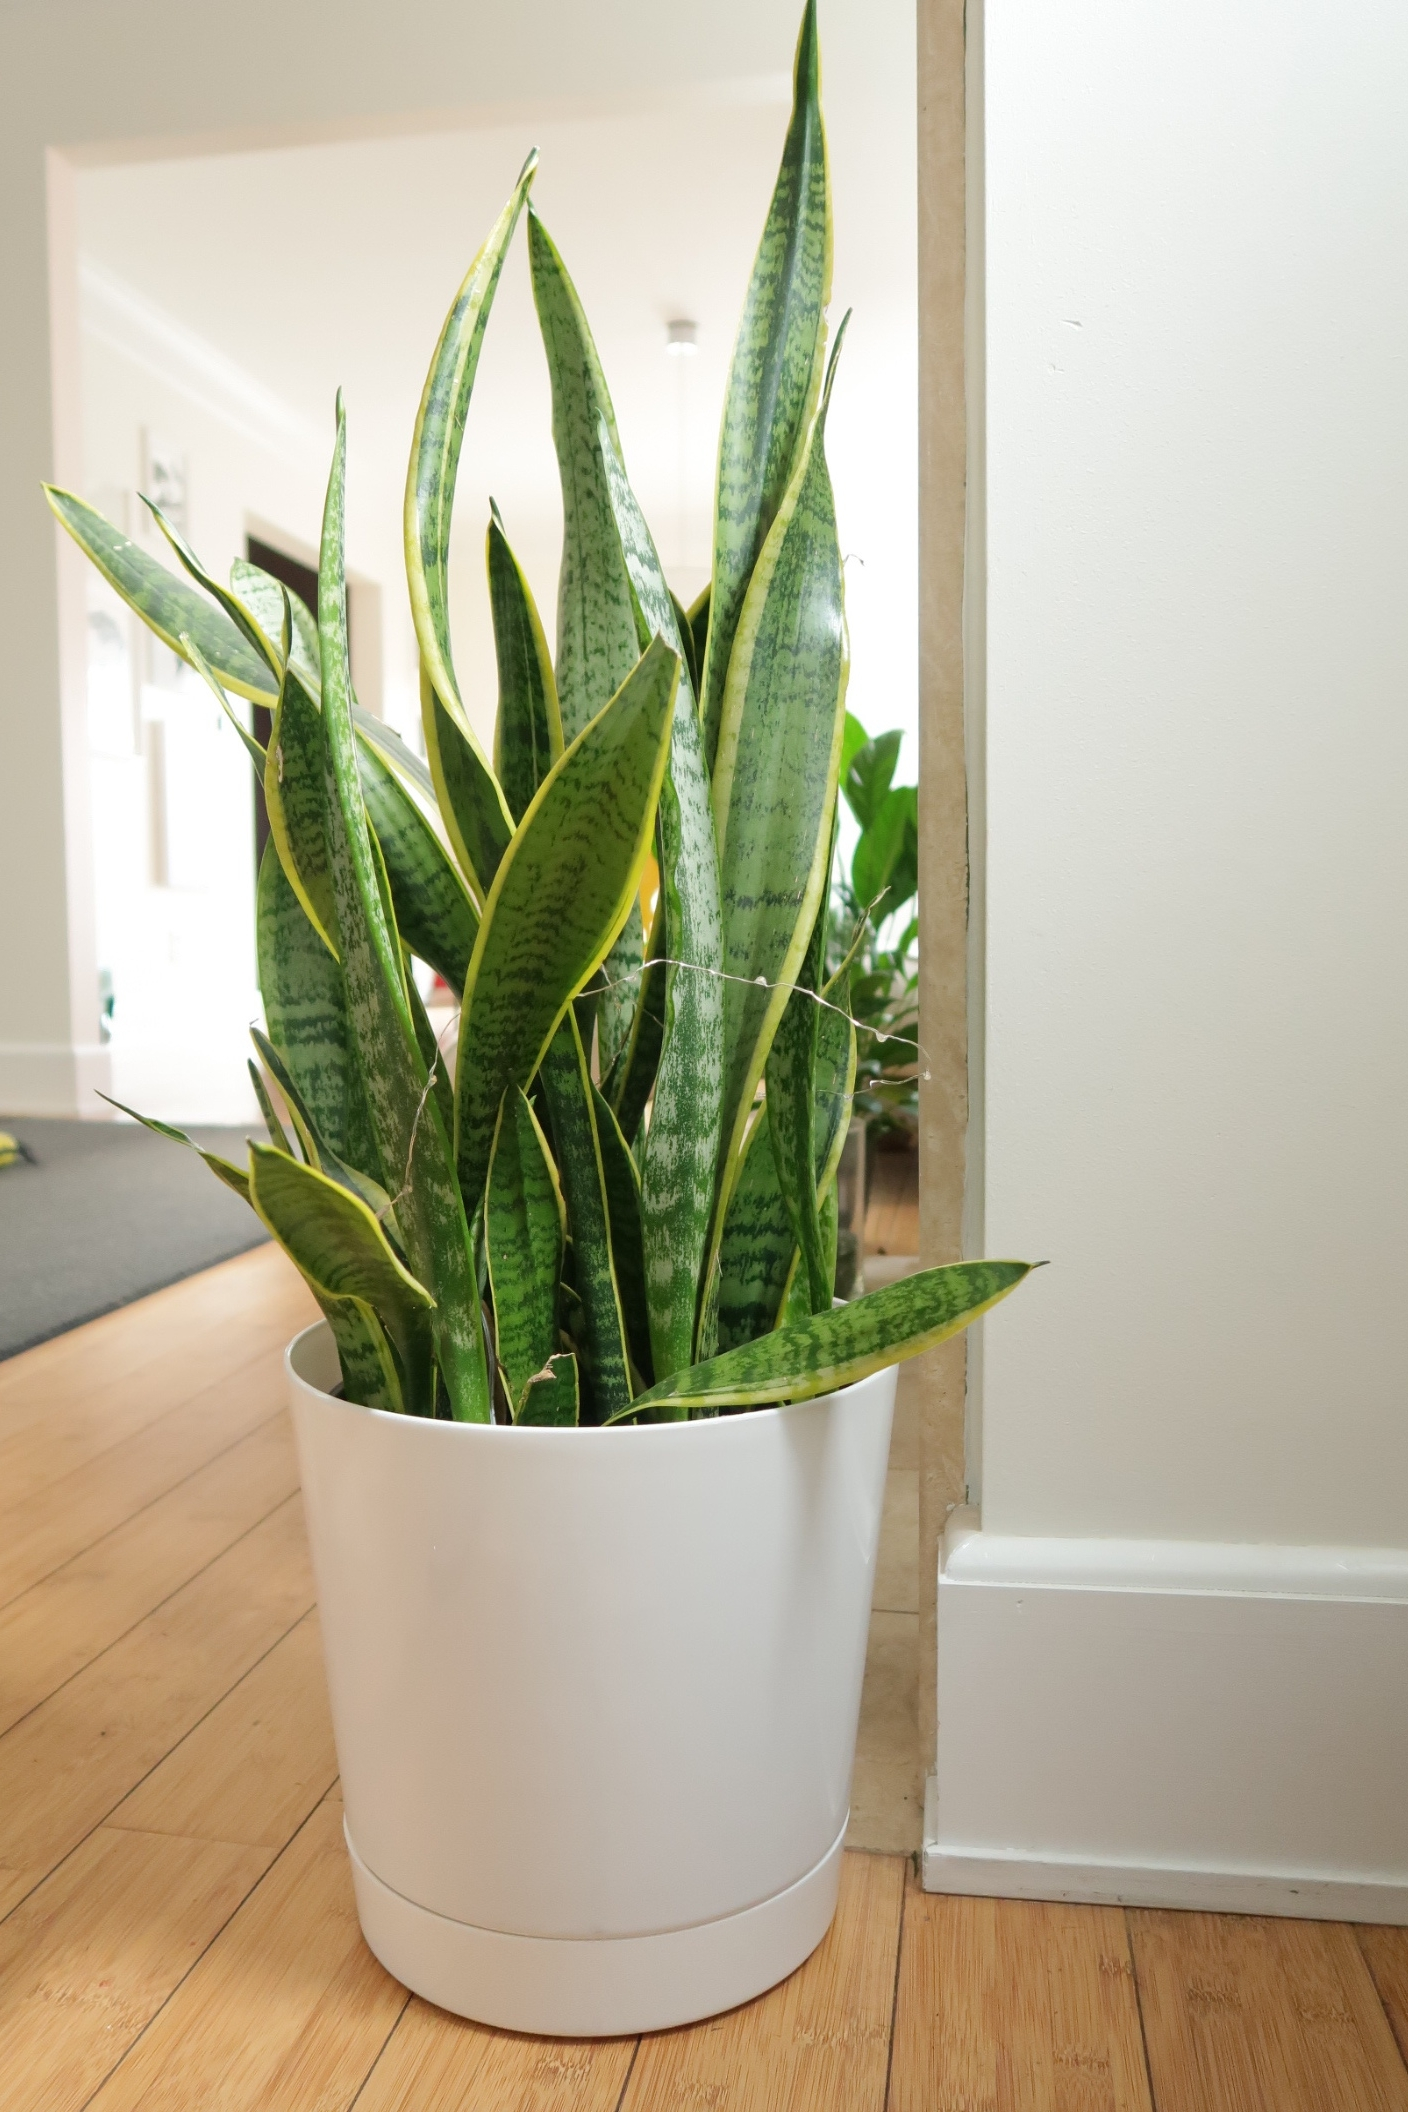 Snake plant from Lakewood Plant company, planter from  Amazon  - the planter is available in a few sizes, click on the hyperlink to see them all!